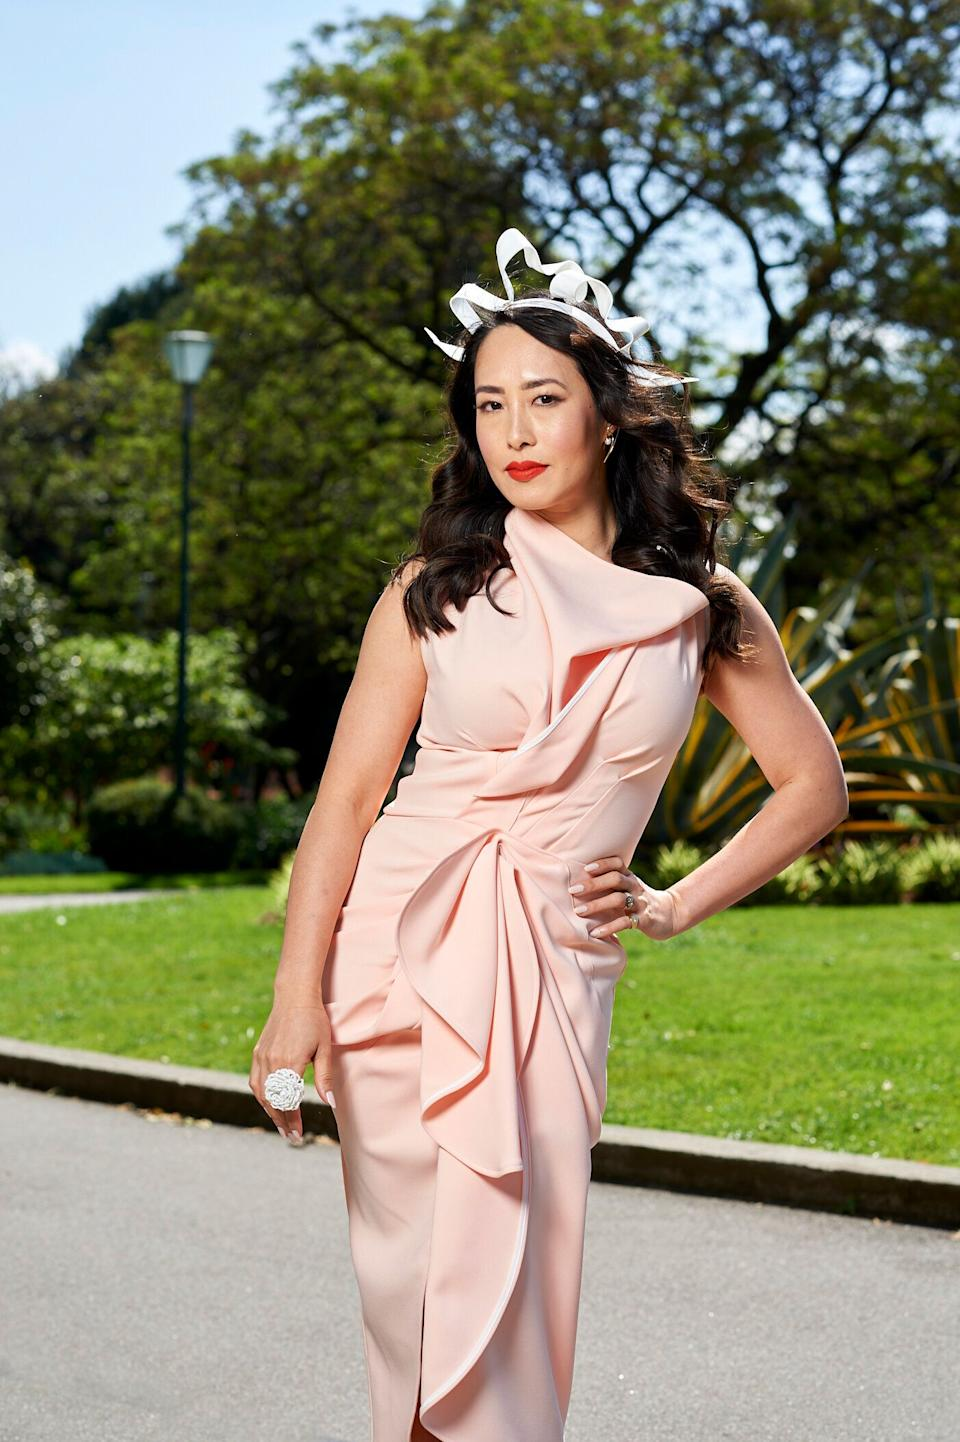 """'MasterChef Australia' judge Melissa Leong poses for <a href=""""https://www.lexus.com.au/senses-electrified"""" target=""""_blank"""" rel=""""noopener noreferrer"""">Lexus</a> after being announced as the luxury car brand's new ambassador ahead of the Melbourne Cup carnival (Photo: Supplied )"""